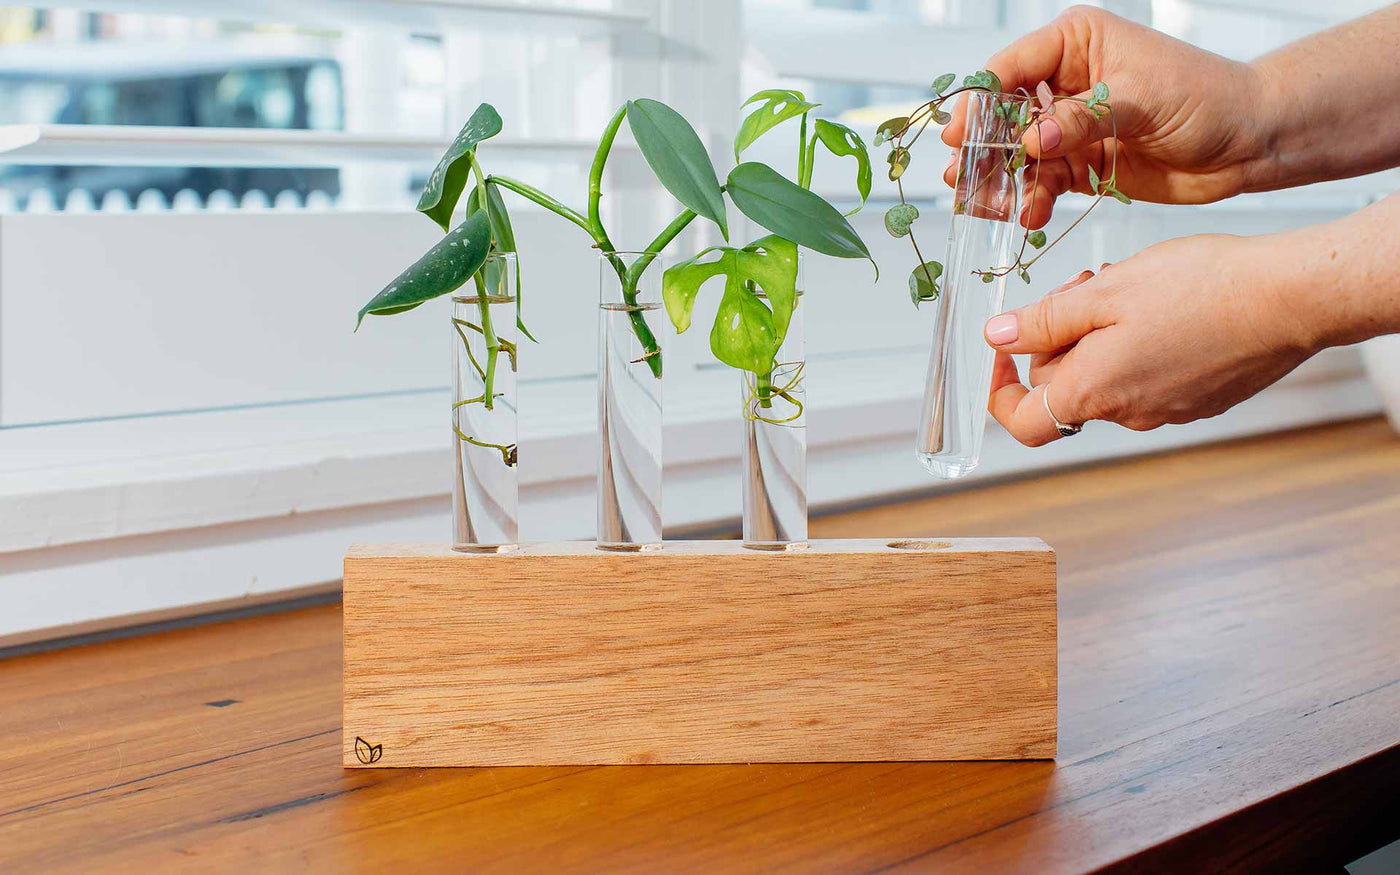 Florence Propagation Station by Cooper and Smith. Propagate plant cuttings in water. Natural timber frame with suspended glass propagation vessels handcrafted in Australia. Free shipping, Afterpay and Apple Pay available.